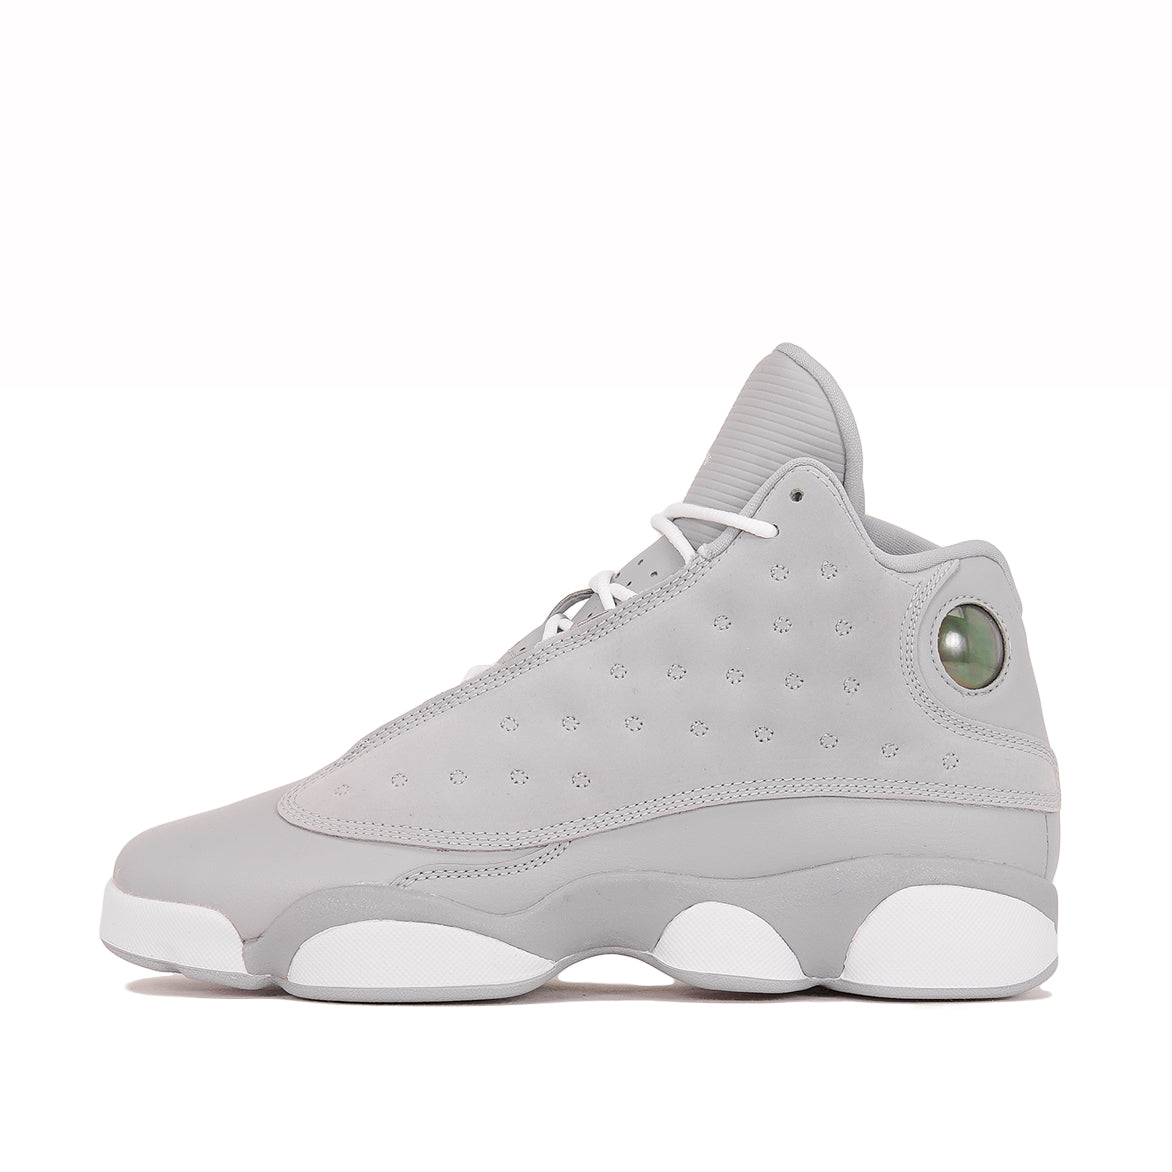 finest selection 46166 b9a91 AIR JORDAN 13 RETRO GG